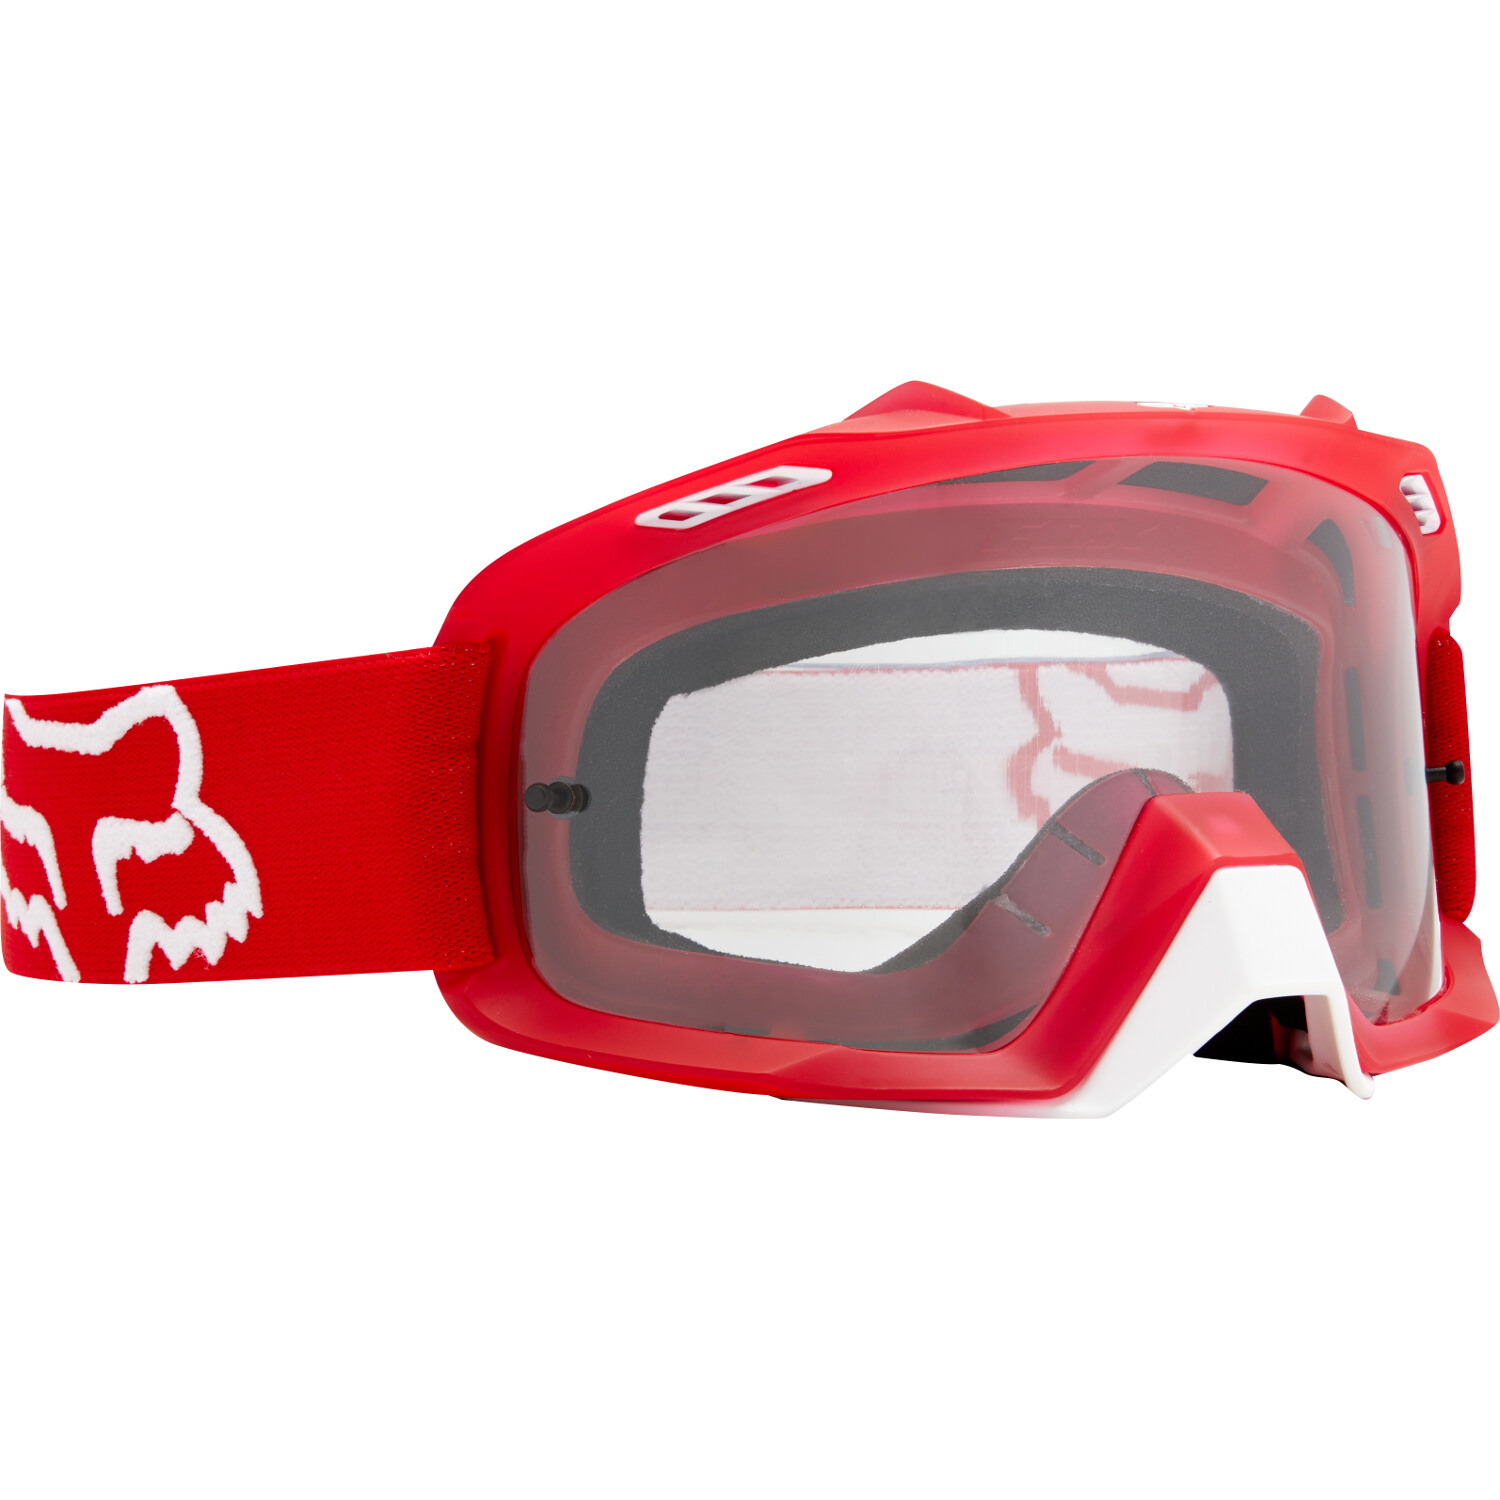 20576-003-OS Fox Racing Air Space Red Motocross Enduro Off-Road Goggle Masque Brille Crossbril